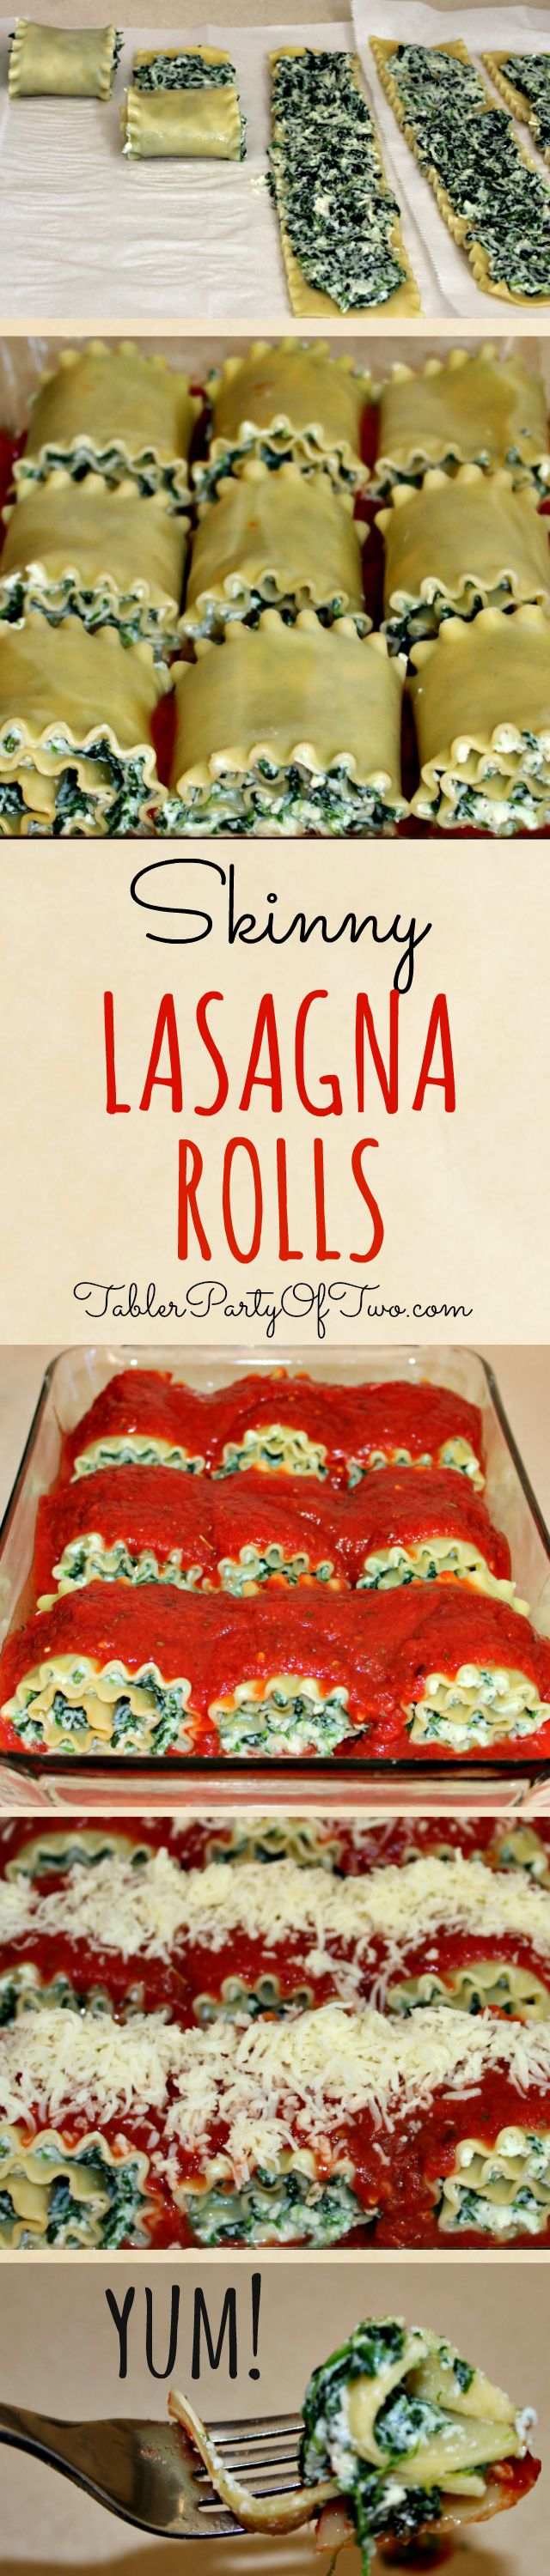 "These Skinny Lasagna Rolls are really easy to make and are a ""no-guilt"" way to enjoy the guilty pleasure of lasagna! Have one roll with a side of salad for a perfectly healthy dinner."